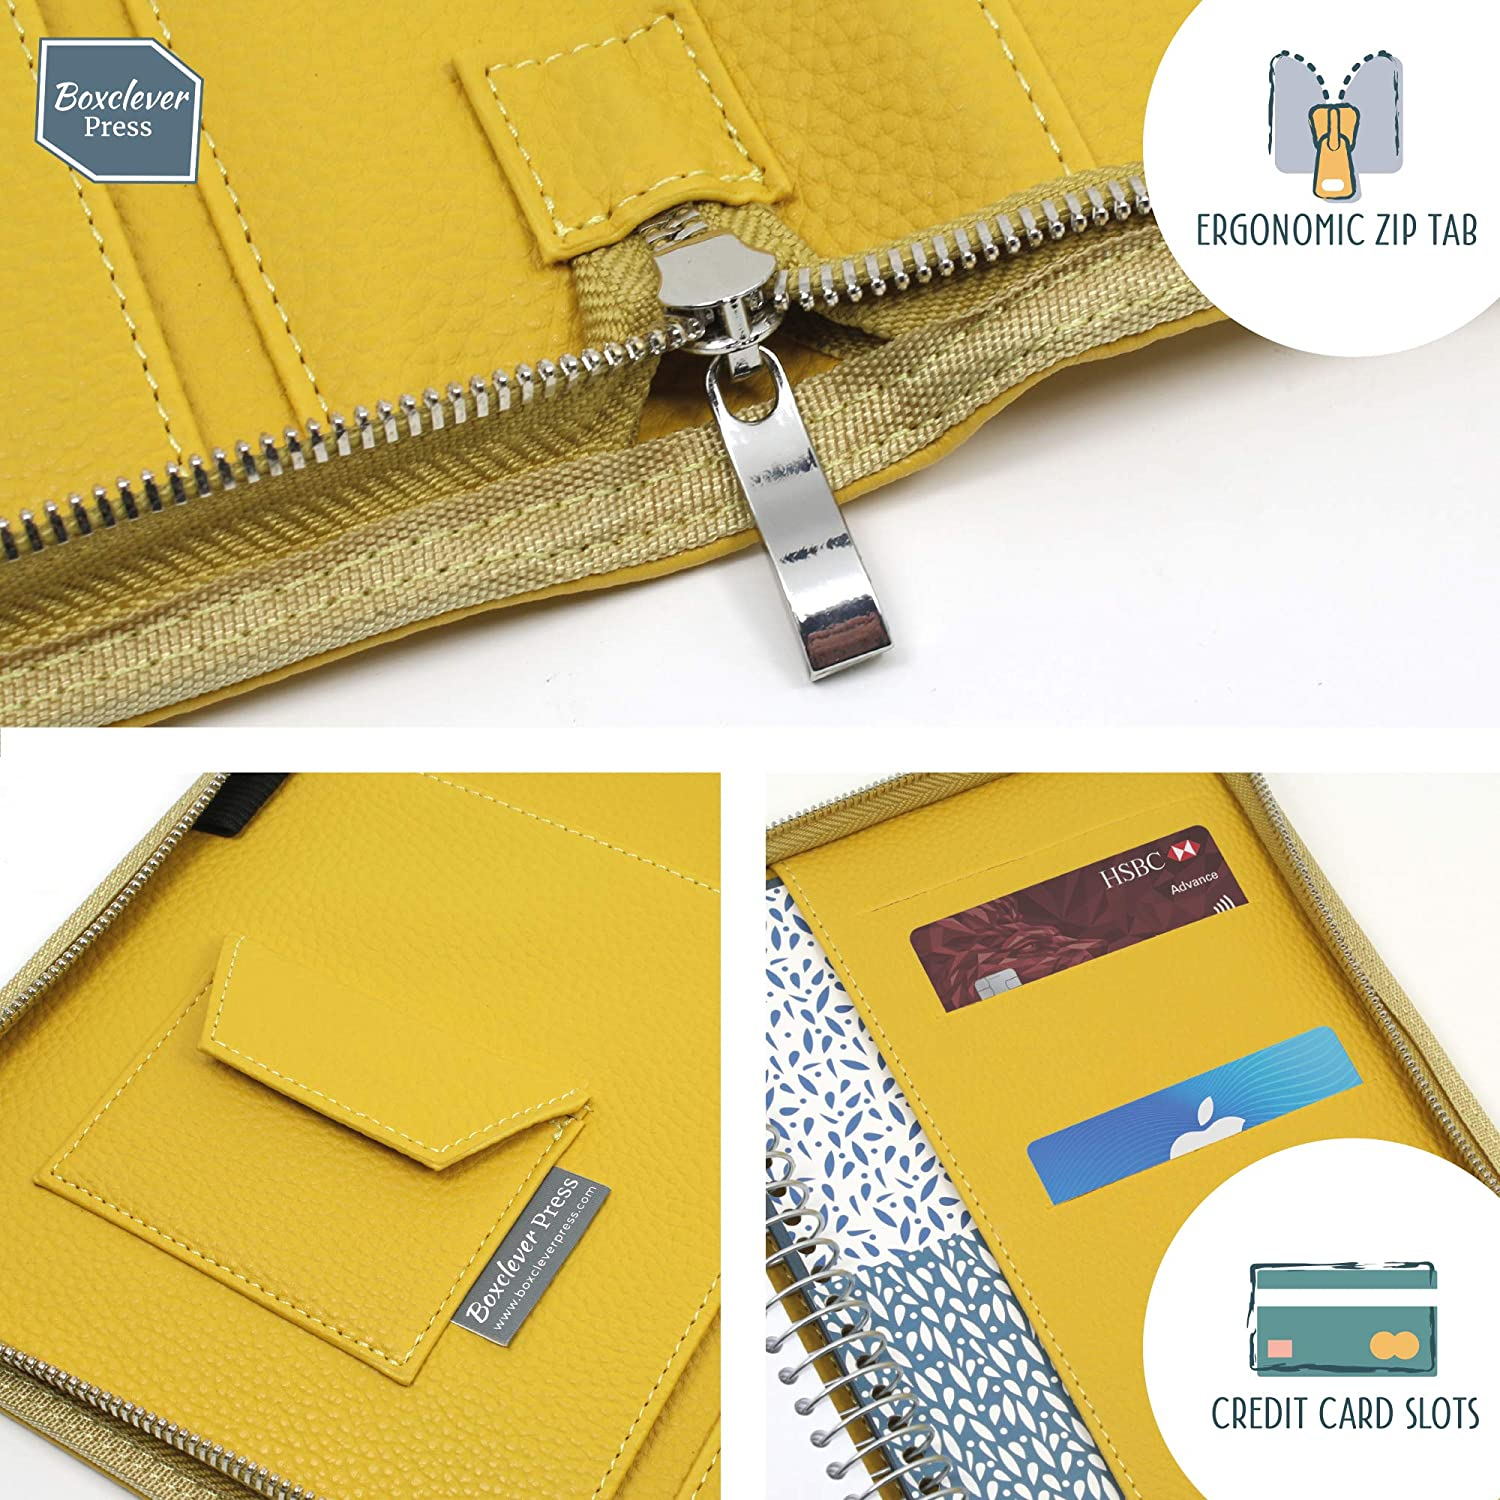 Academic A5 Week-to-View Diary Organiser with Large Spaces Storm Blue Starts mid-August 2019 Until December 2020. Boxclever Press 2019 2020 Life Book Diary in a Faux Leather Cover